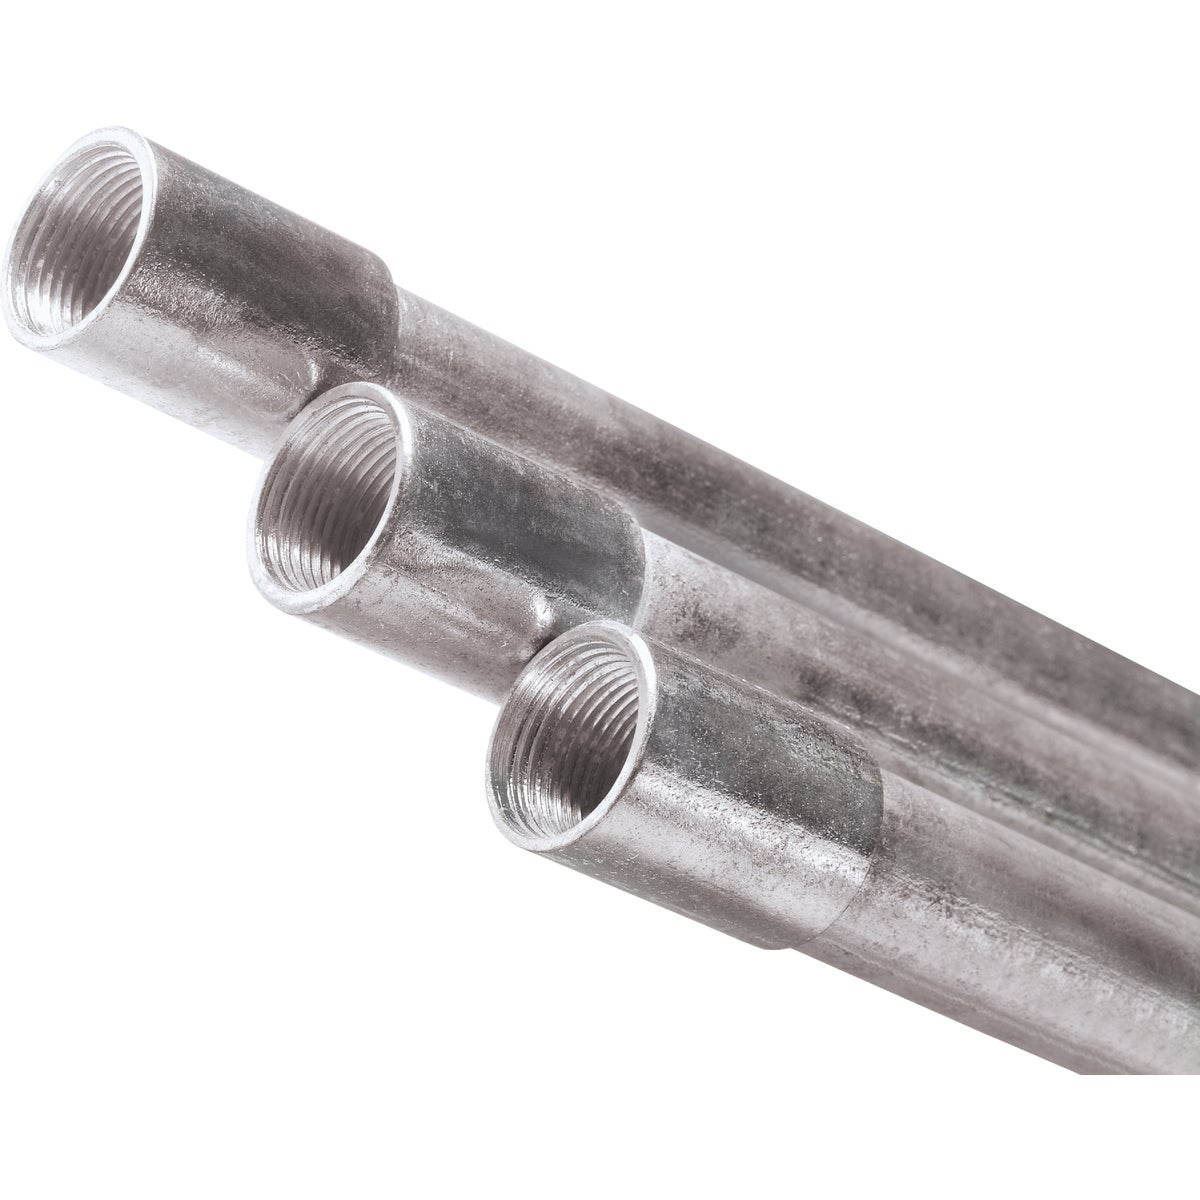 "1-1/4"" RIGID 10' CONDUIT - 103085 by Allied Tube  Atkore"